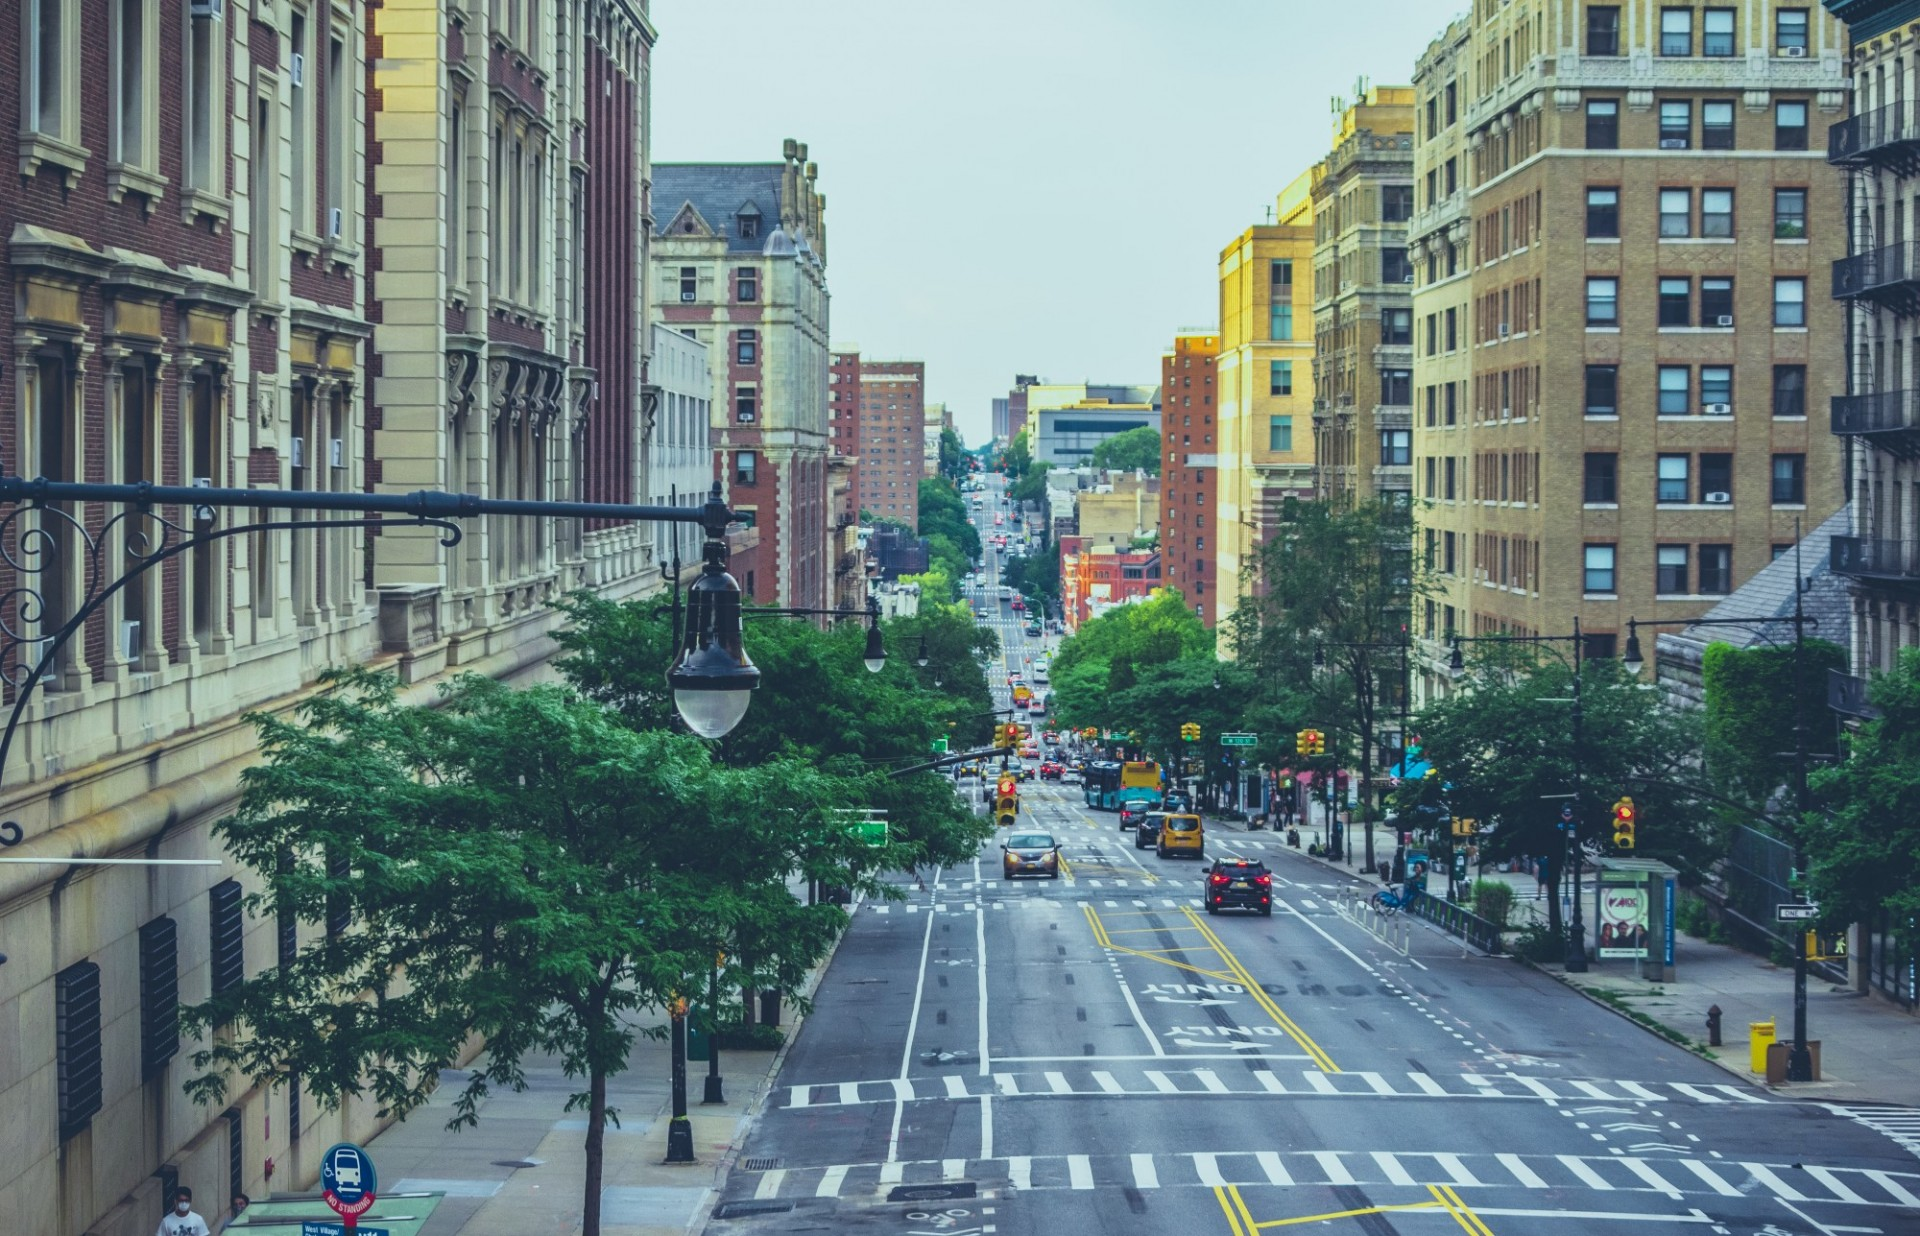 Image of cars driving down Amsterdam Avenue in New York City.